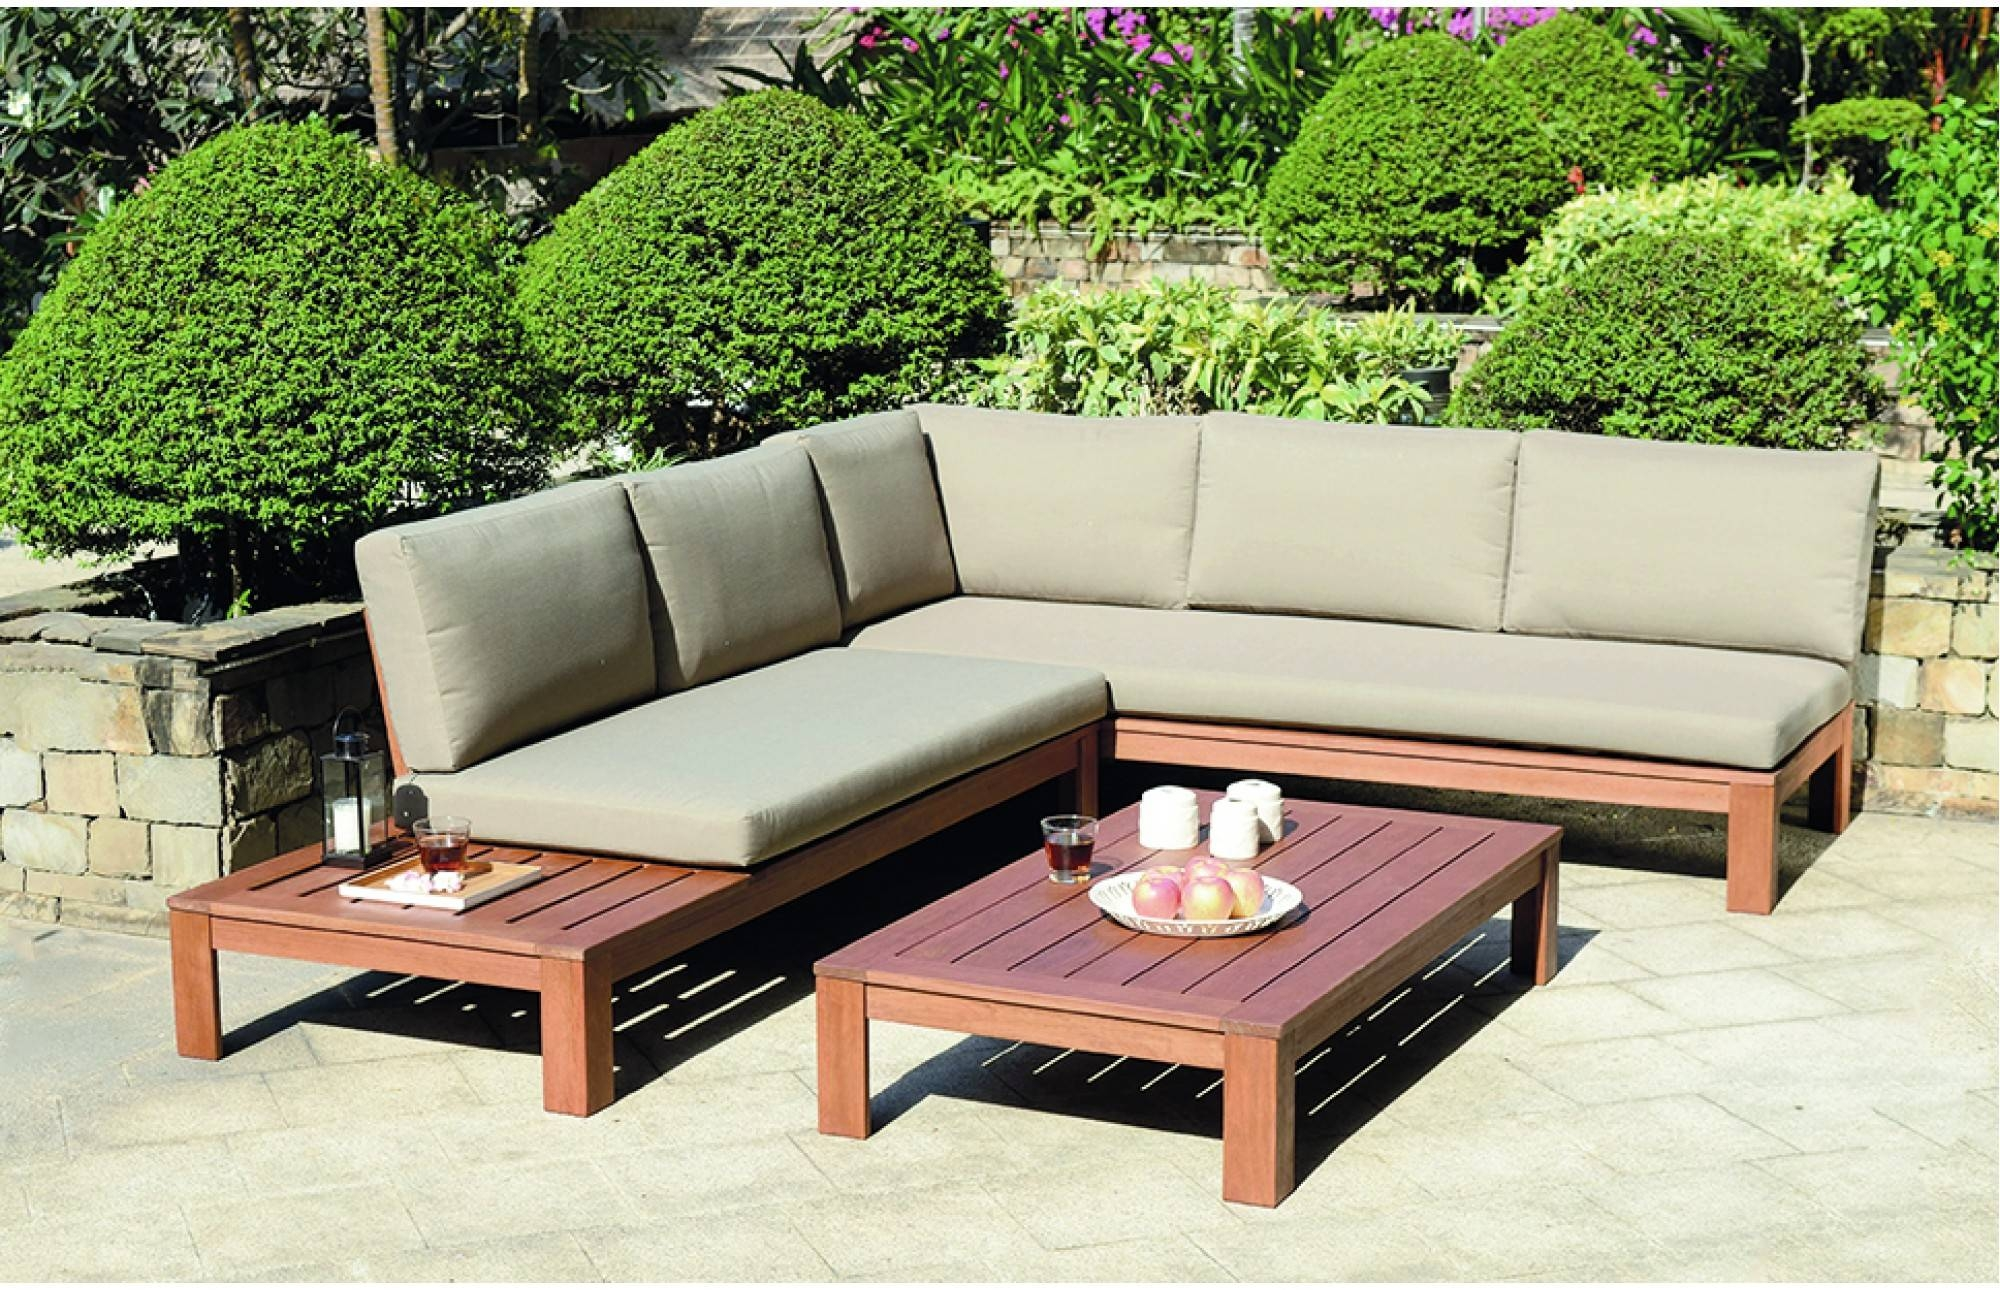 Miami Wooden Garden Lounge Set With Cushions Out And Out Original With Wooden Garden Coffee Tables (Image 19 of 30)